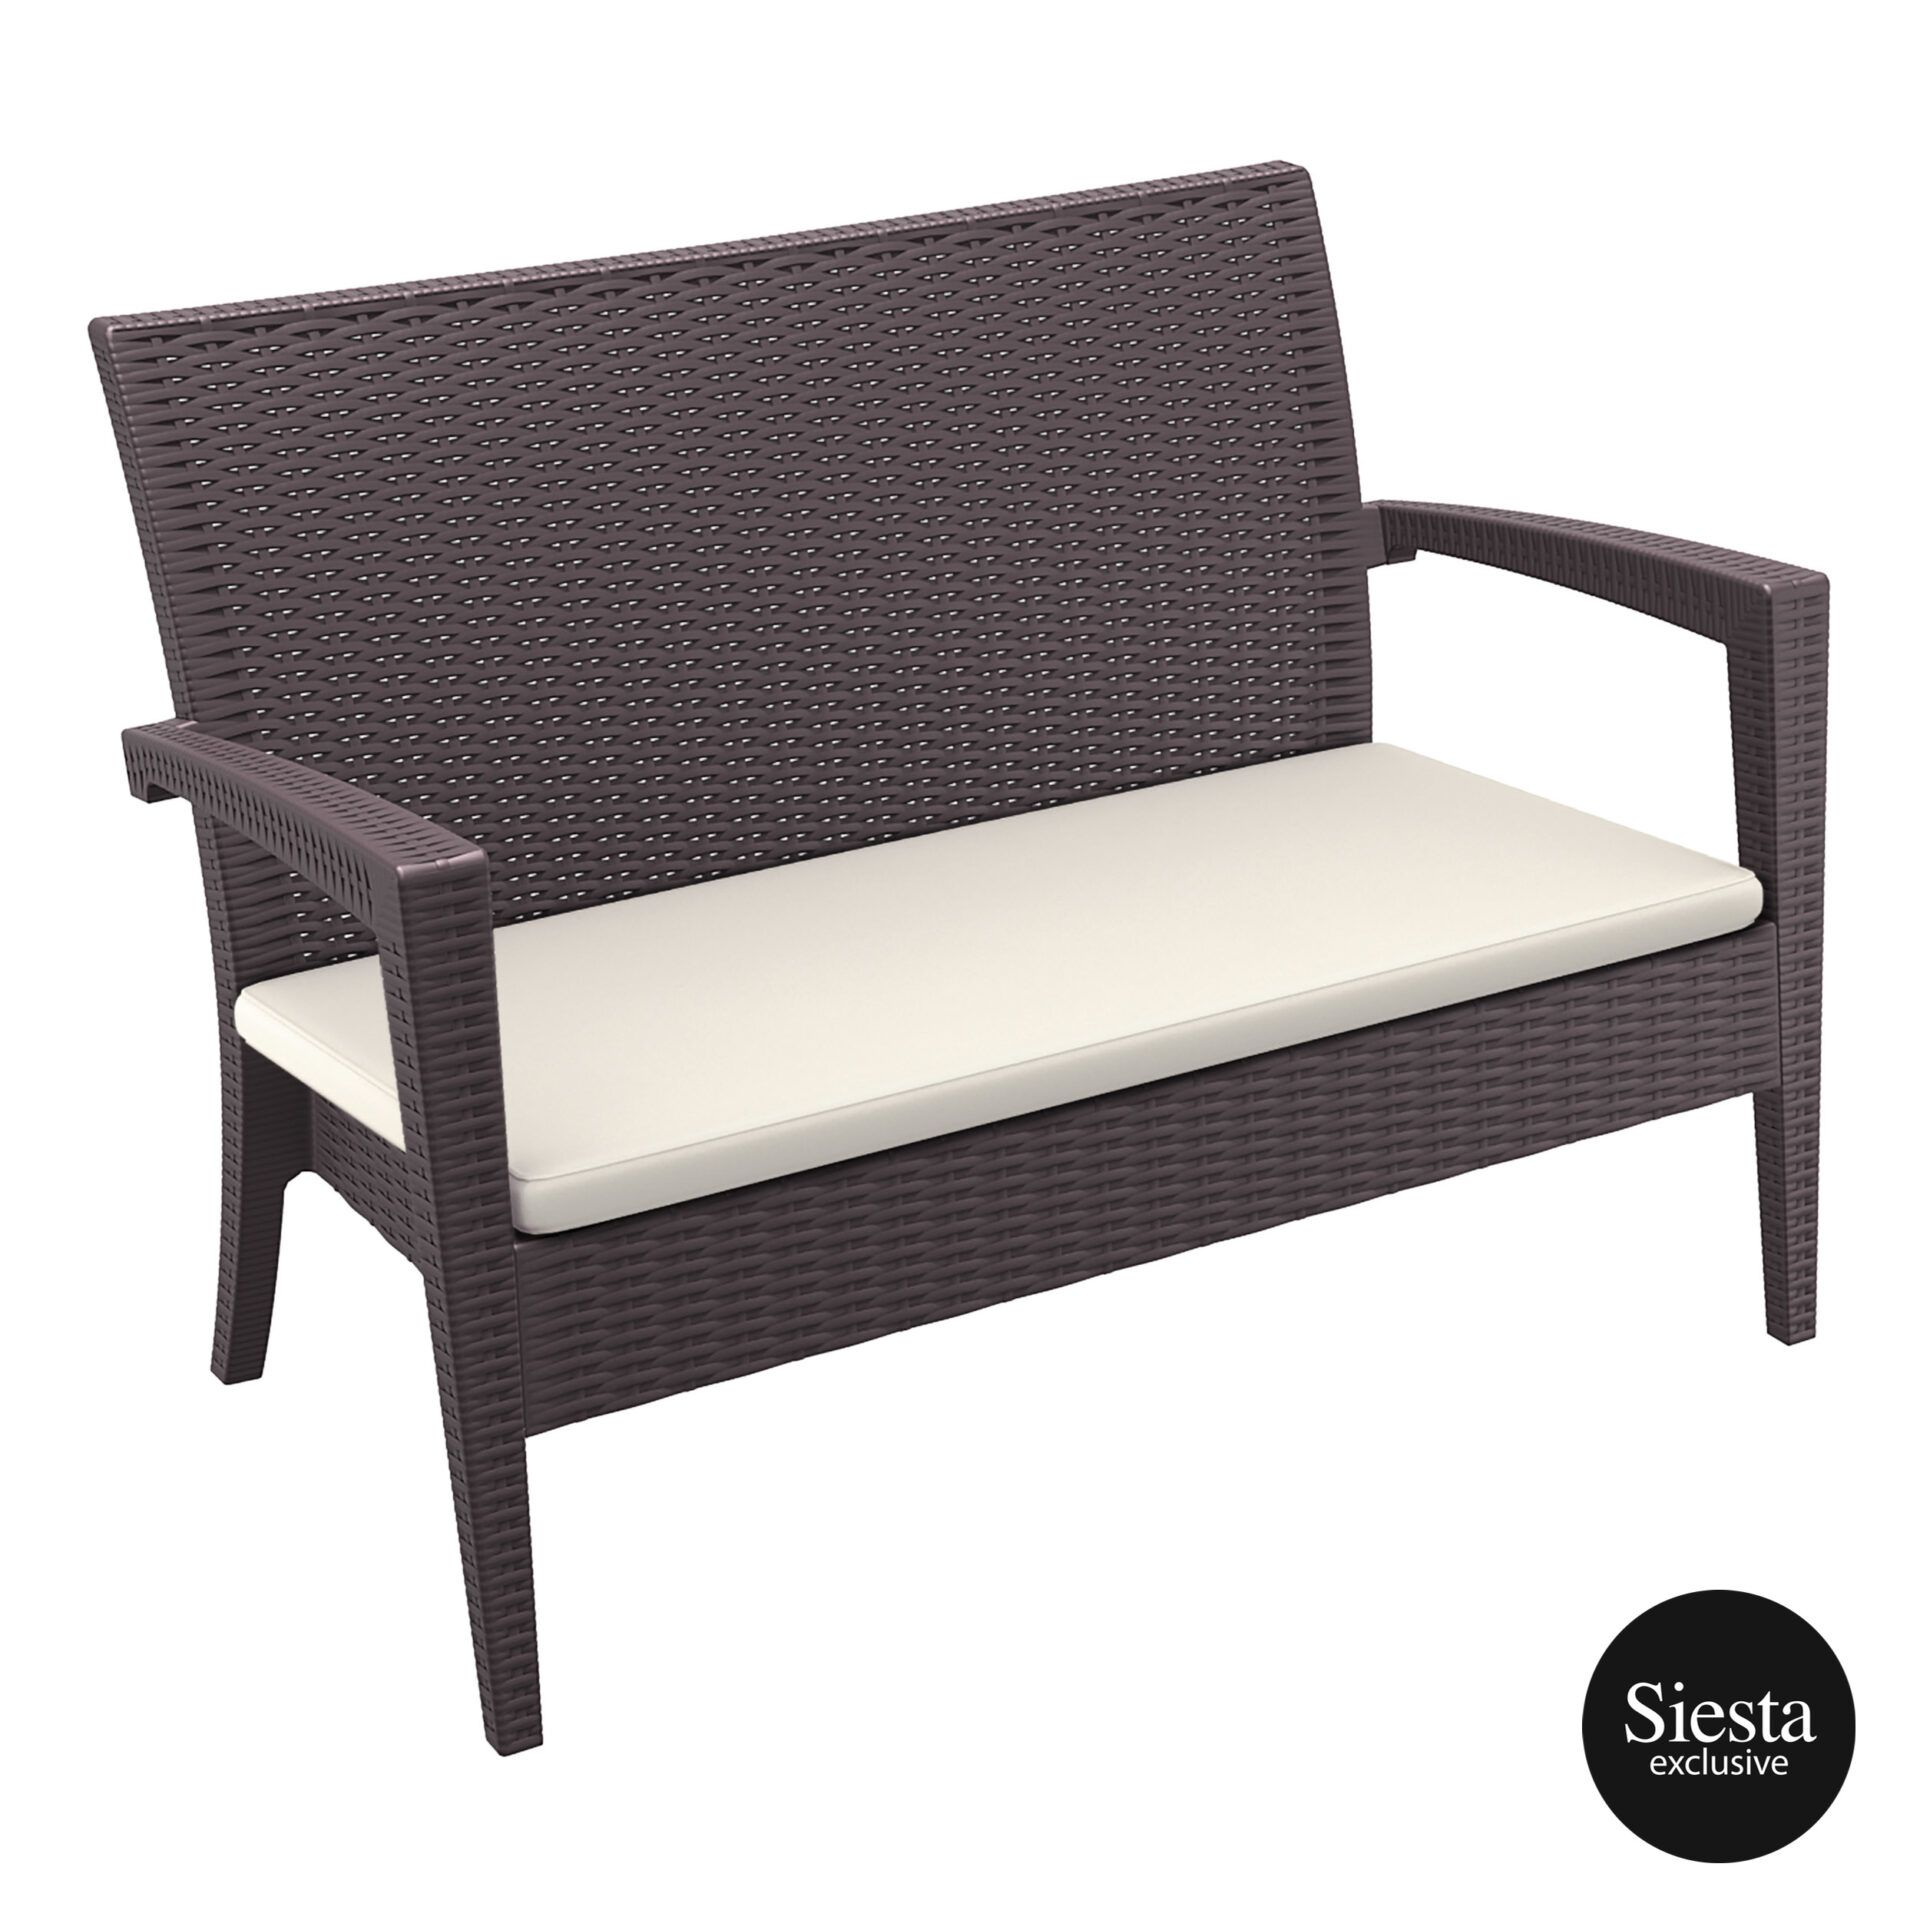 Resin Rattan Miami Tequila Lounge sofa cushion brown front side